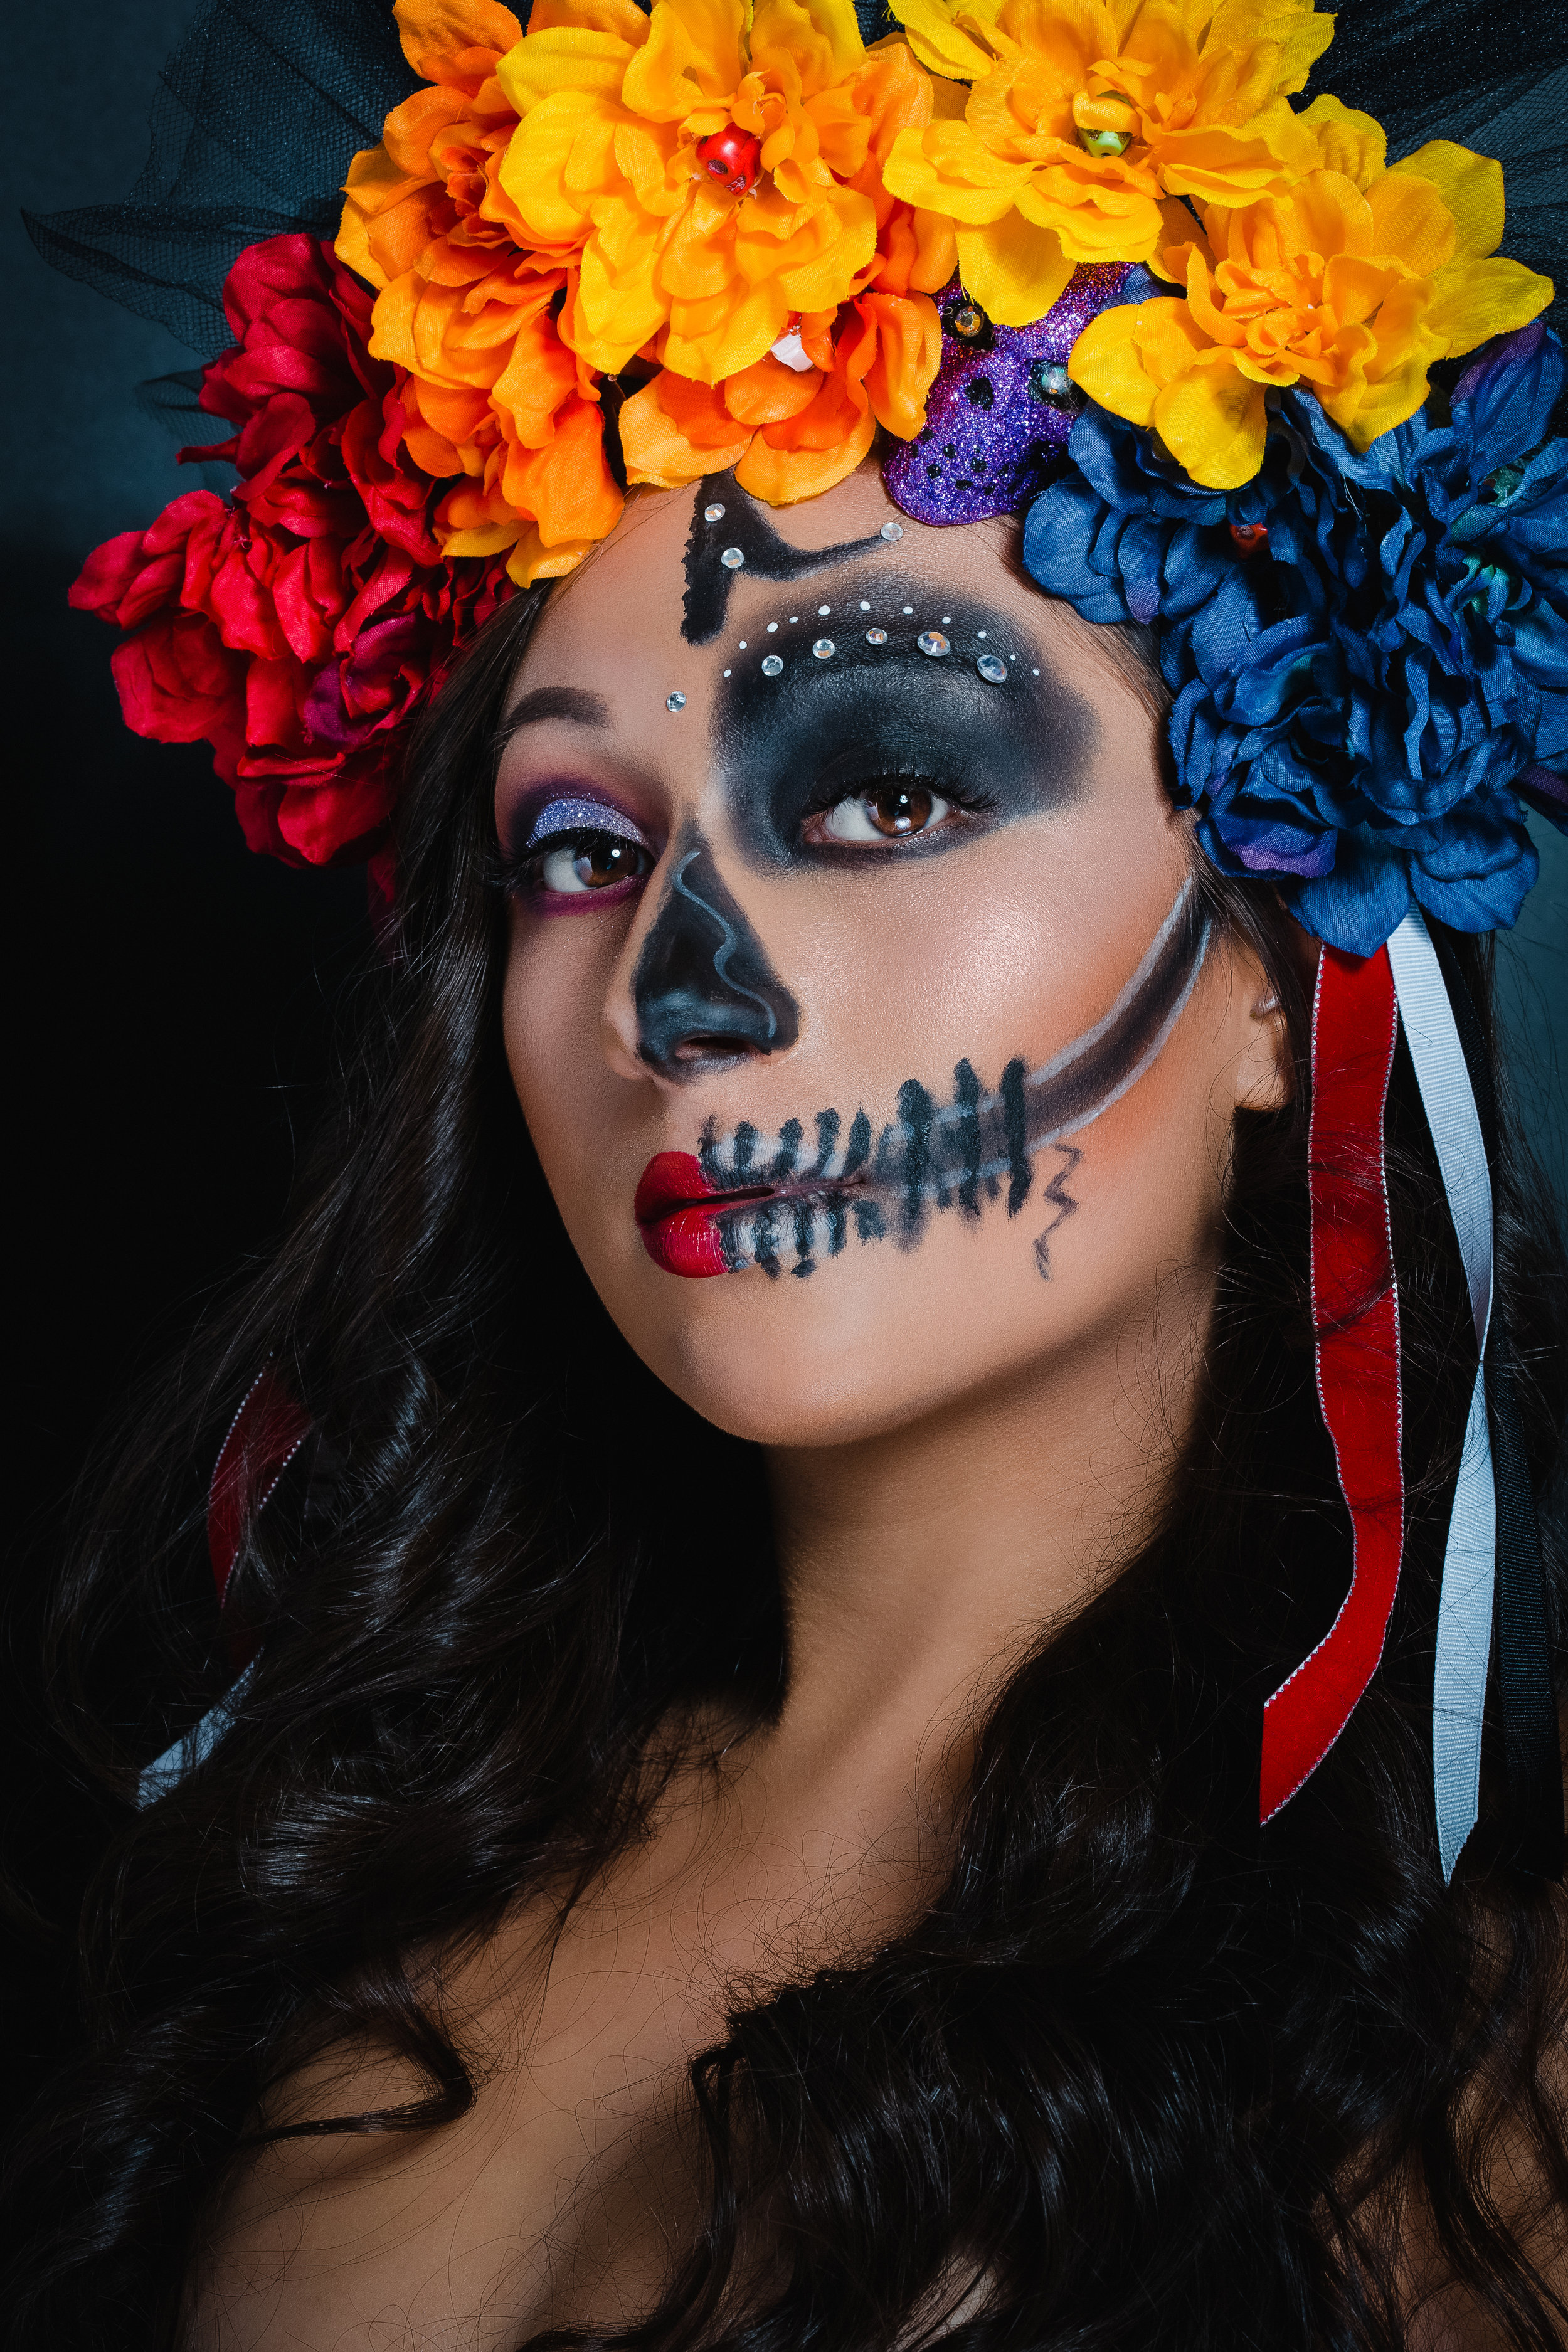 Day of the Dead - The origins of this cultural day can be traced back to the Aztecs. However, in mainstream culture today, it's mostly known for the traditional Catrina (skull) makeup that has become a Halloween fast favorite.